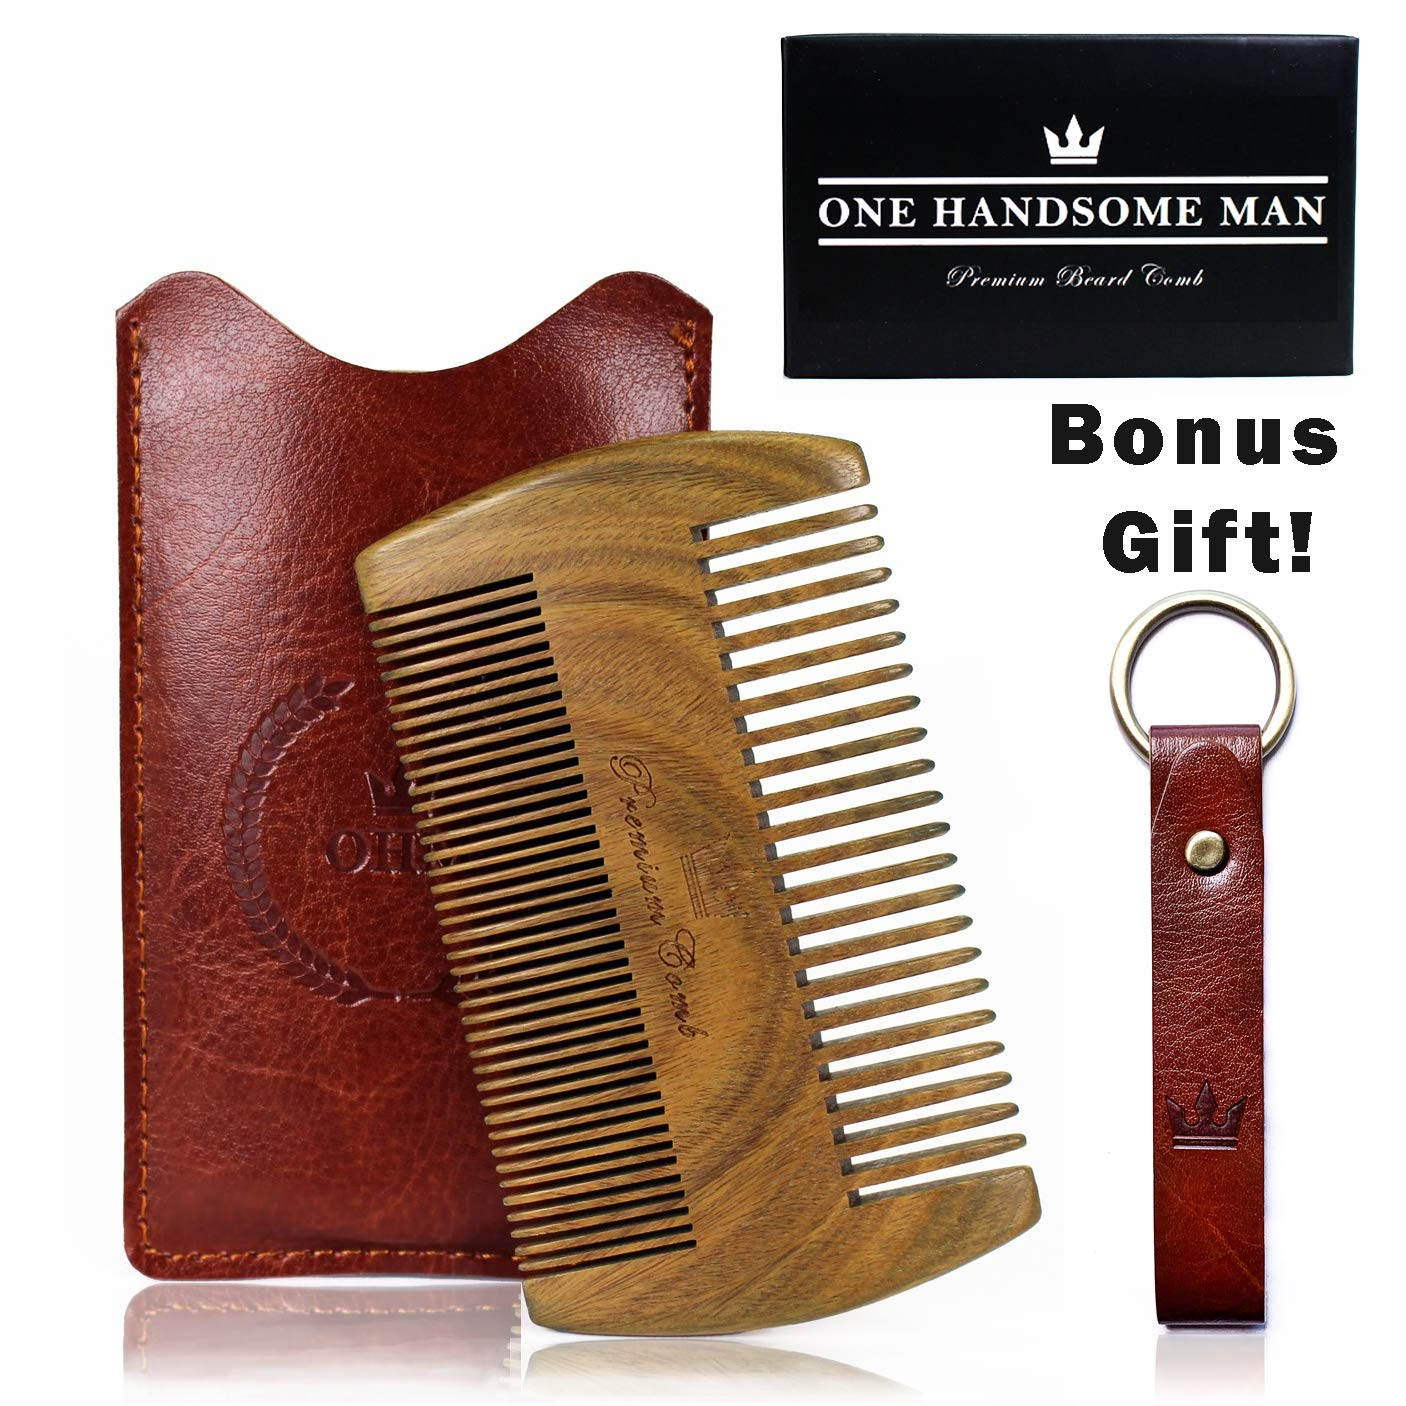 eac4ca533ca3 Amazon.com   Beard Comb Kit by One Handsome Man - Sandalwood Beard Comb  with PU Leather Case and Gift Box - Perfect Gifts For Him or Gift For Men -  Benefits ...